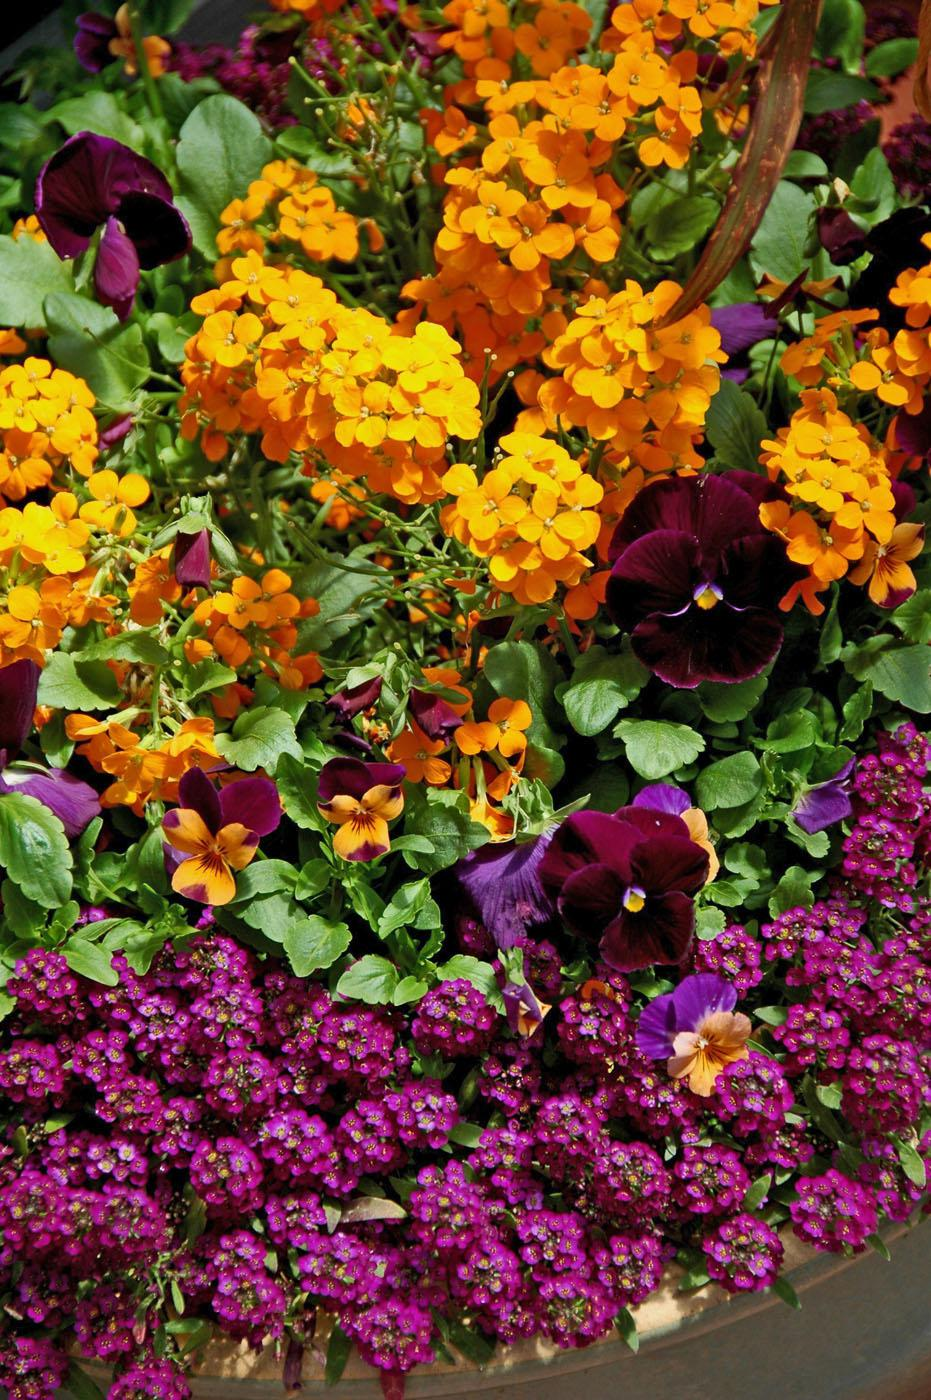 This cool season container has Citrona orange in fiery contrast with the purple from Matrix pansies and alyssum. Sorbet Sunny Royale viola either harmonizes or contrasts with every other plant in the container. Easter Bonnet alyssum softly tumbles over the rim. (Photo by Norman Winter)